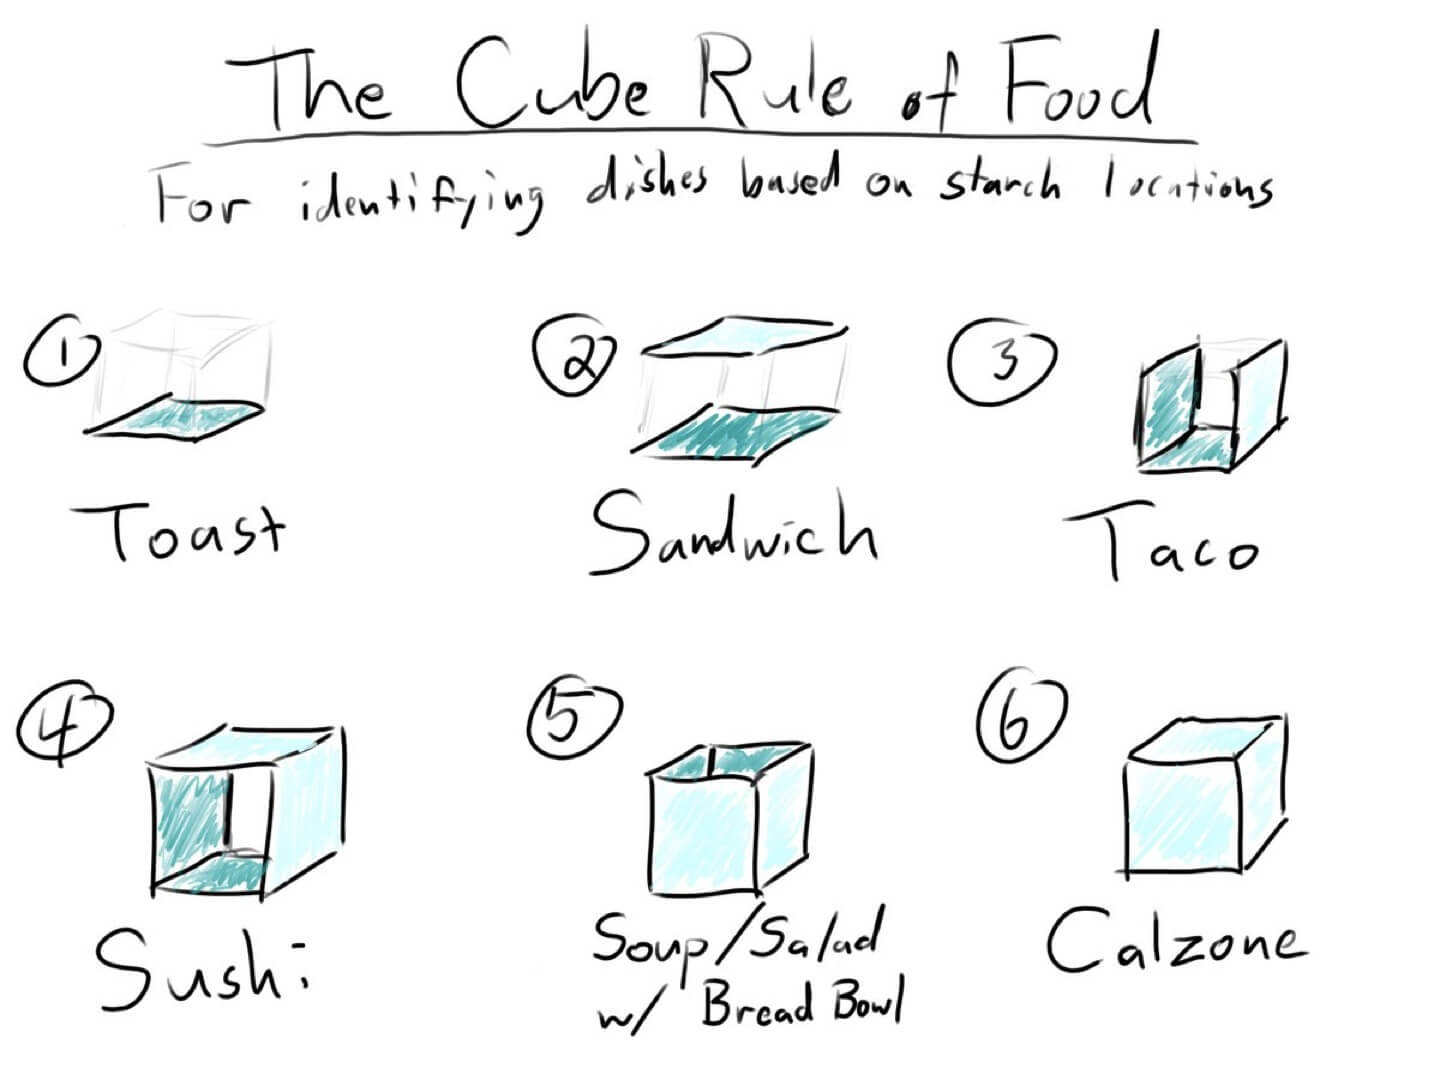 The Cube Rule of Food for identifying dishes based on starch locations